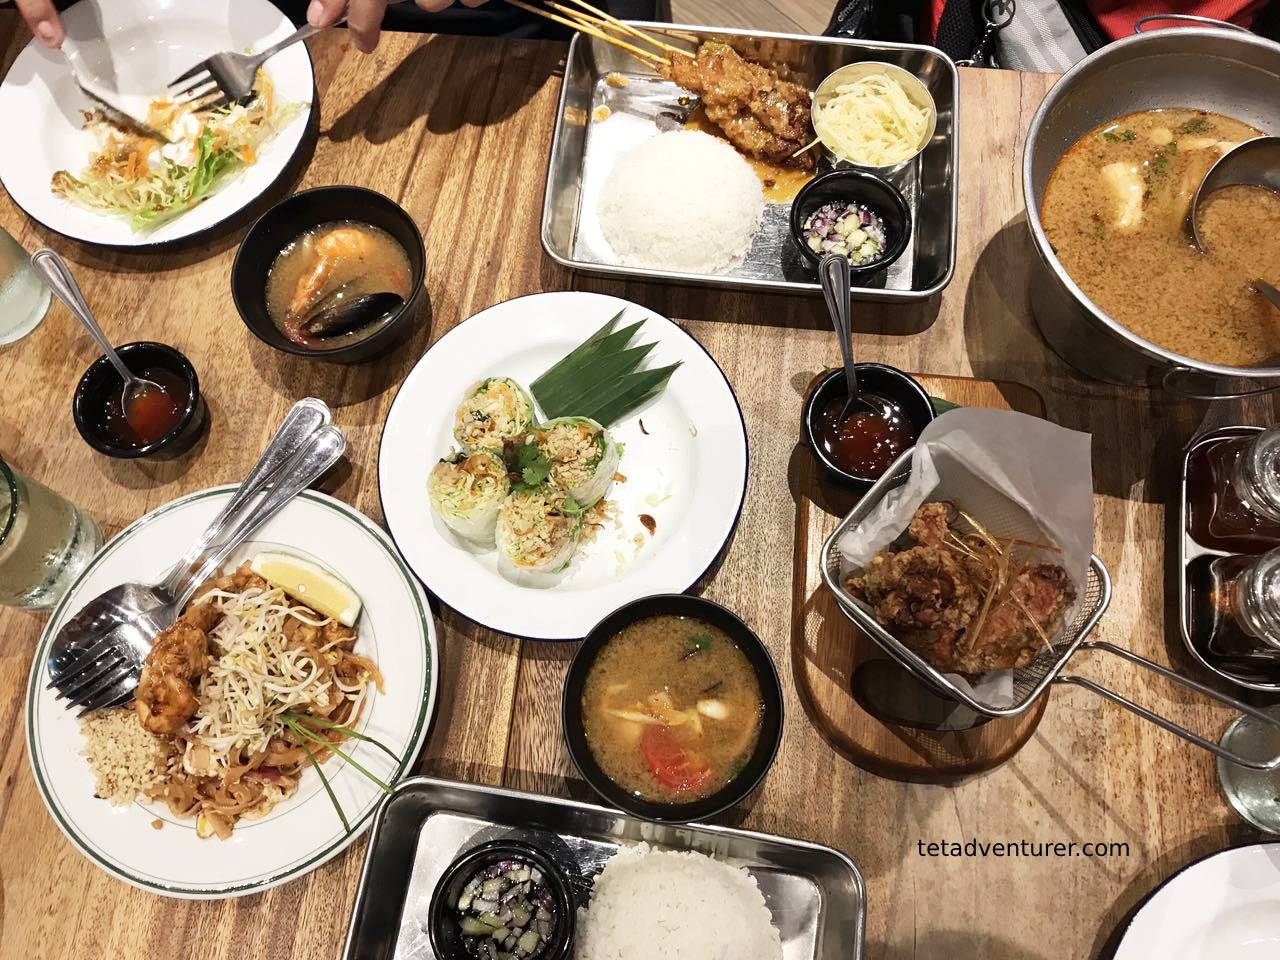 Cuisines With Spicy Food Tetadventurer Blog Thai Lovin At Easy Tiger In Uptown Mall Bgc